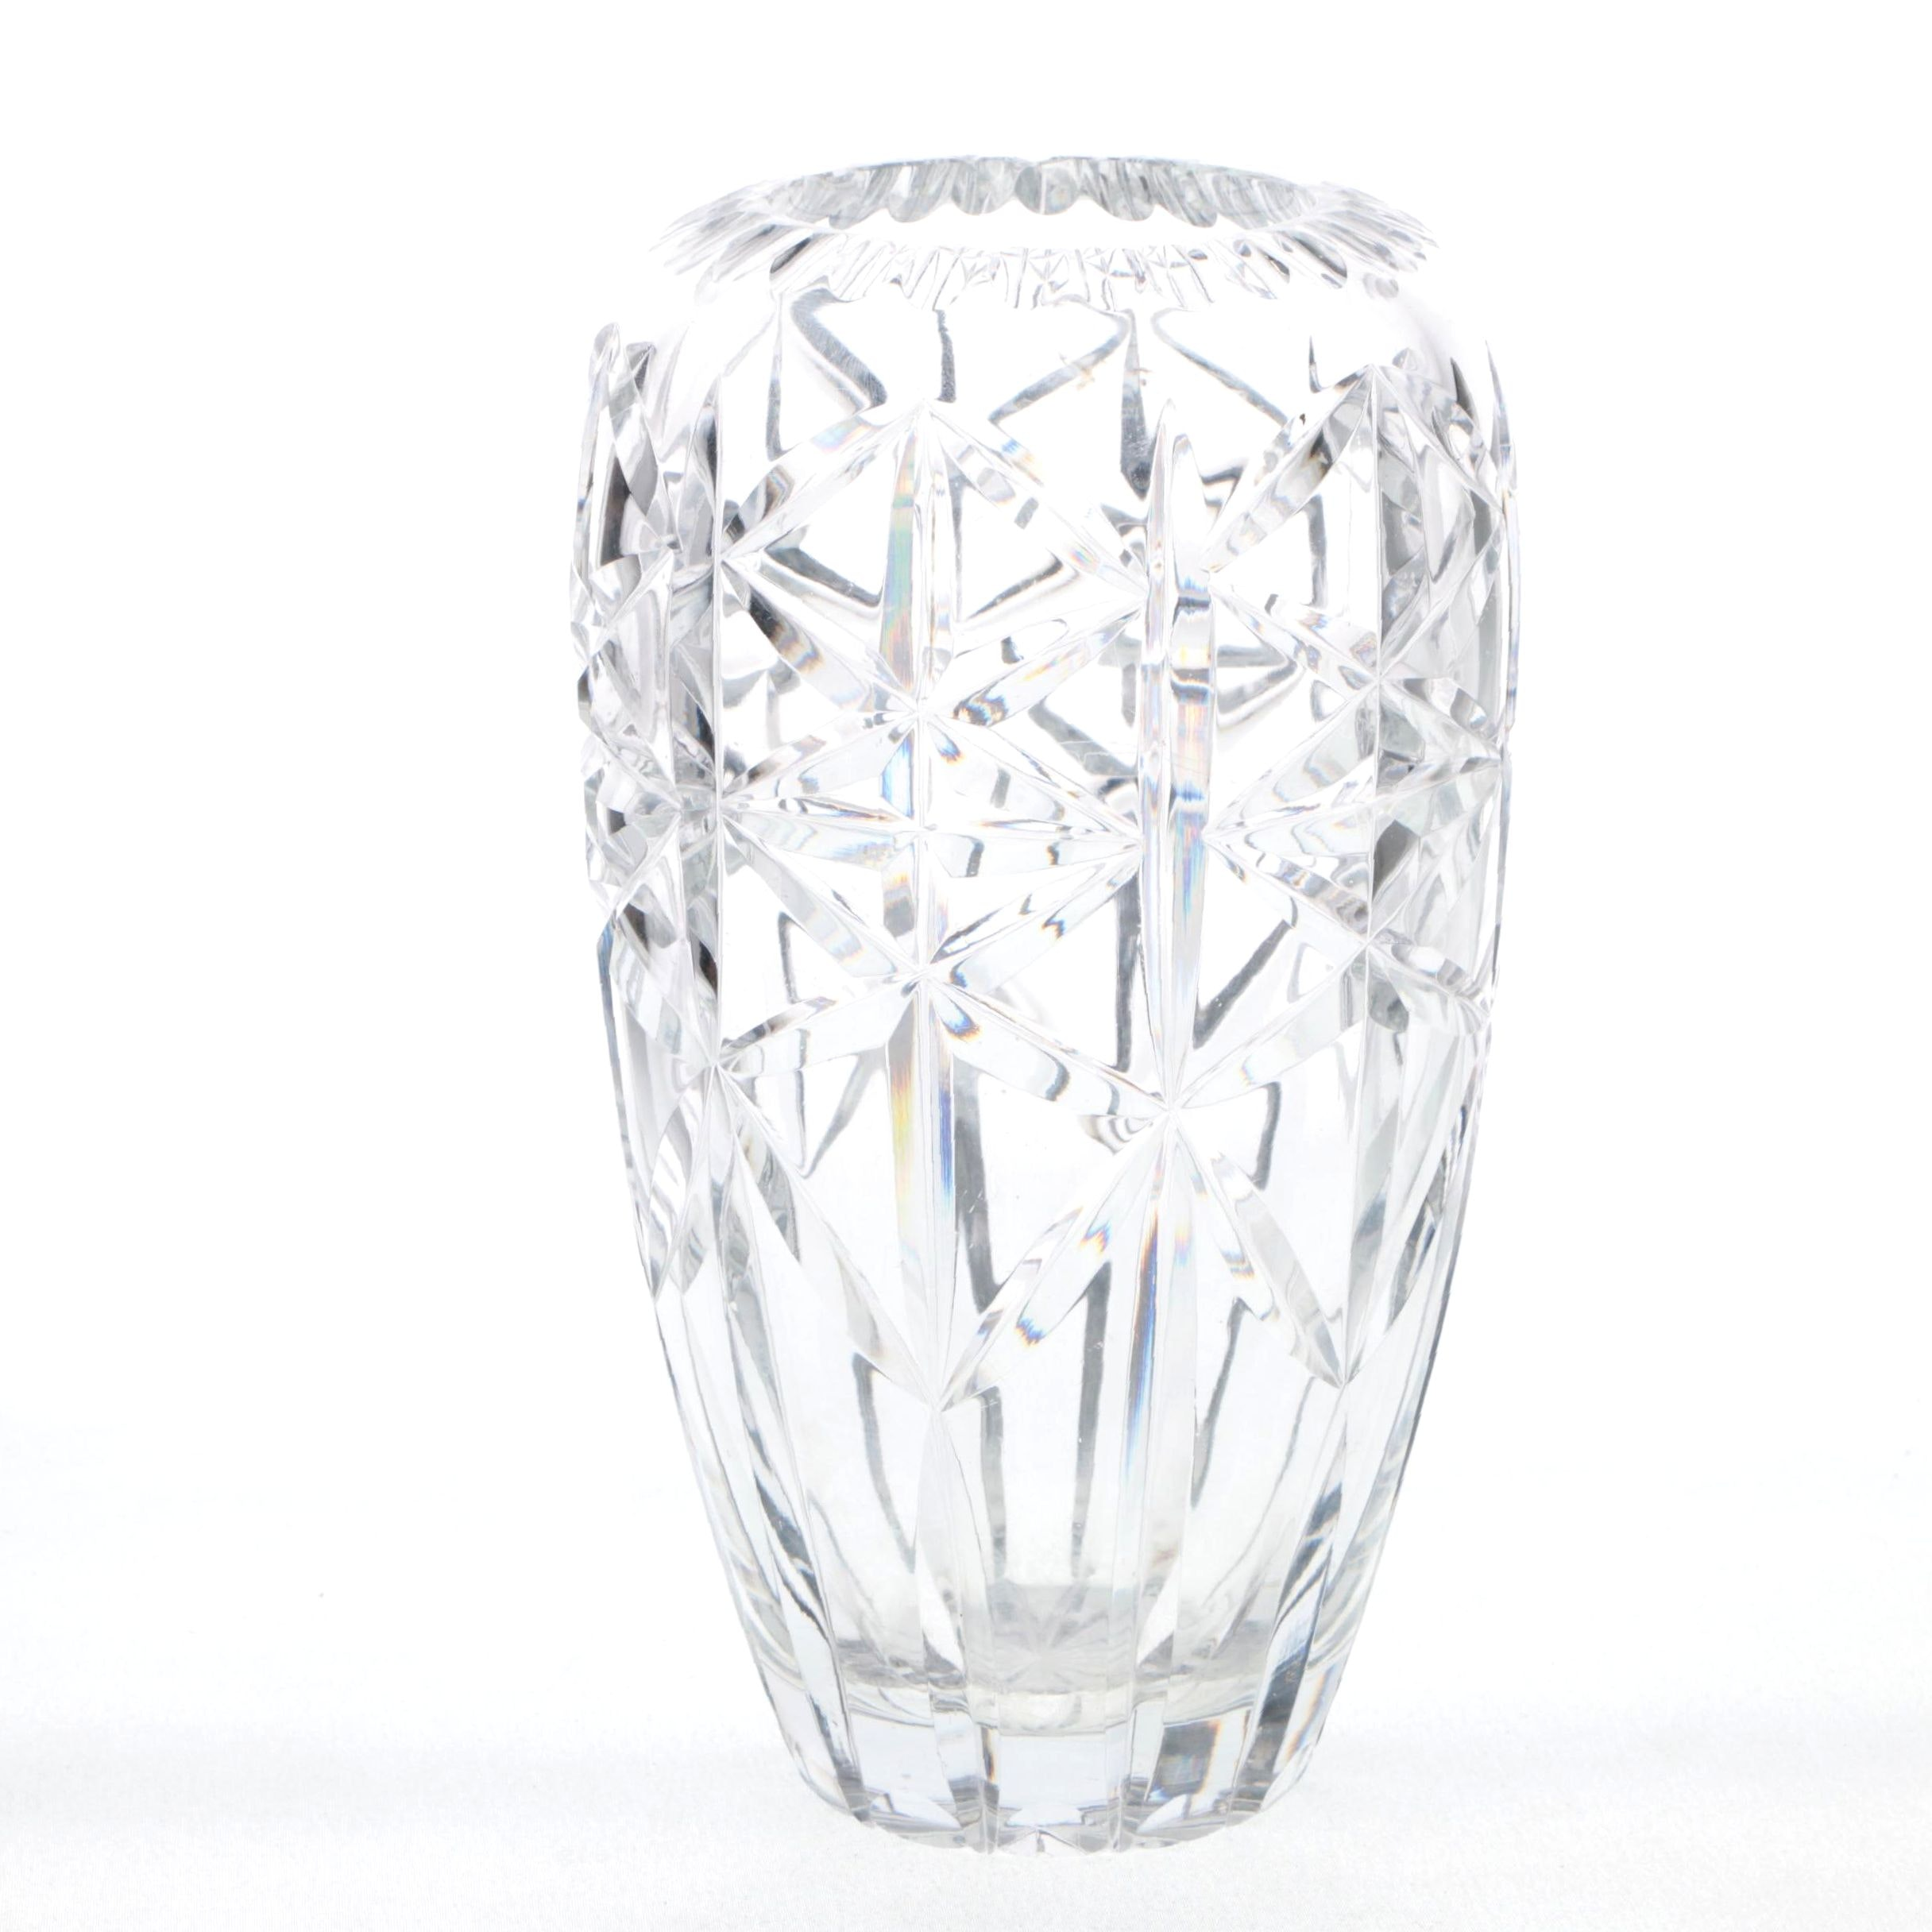 Deco Revival Crystal Vase